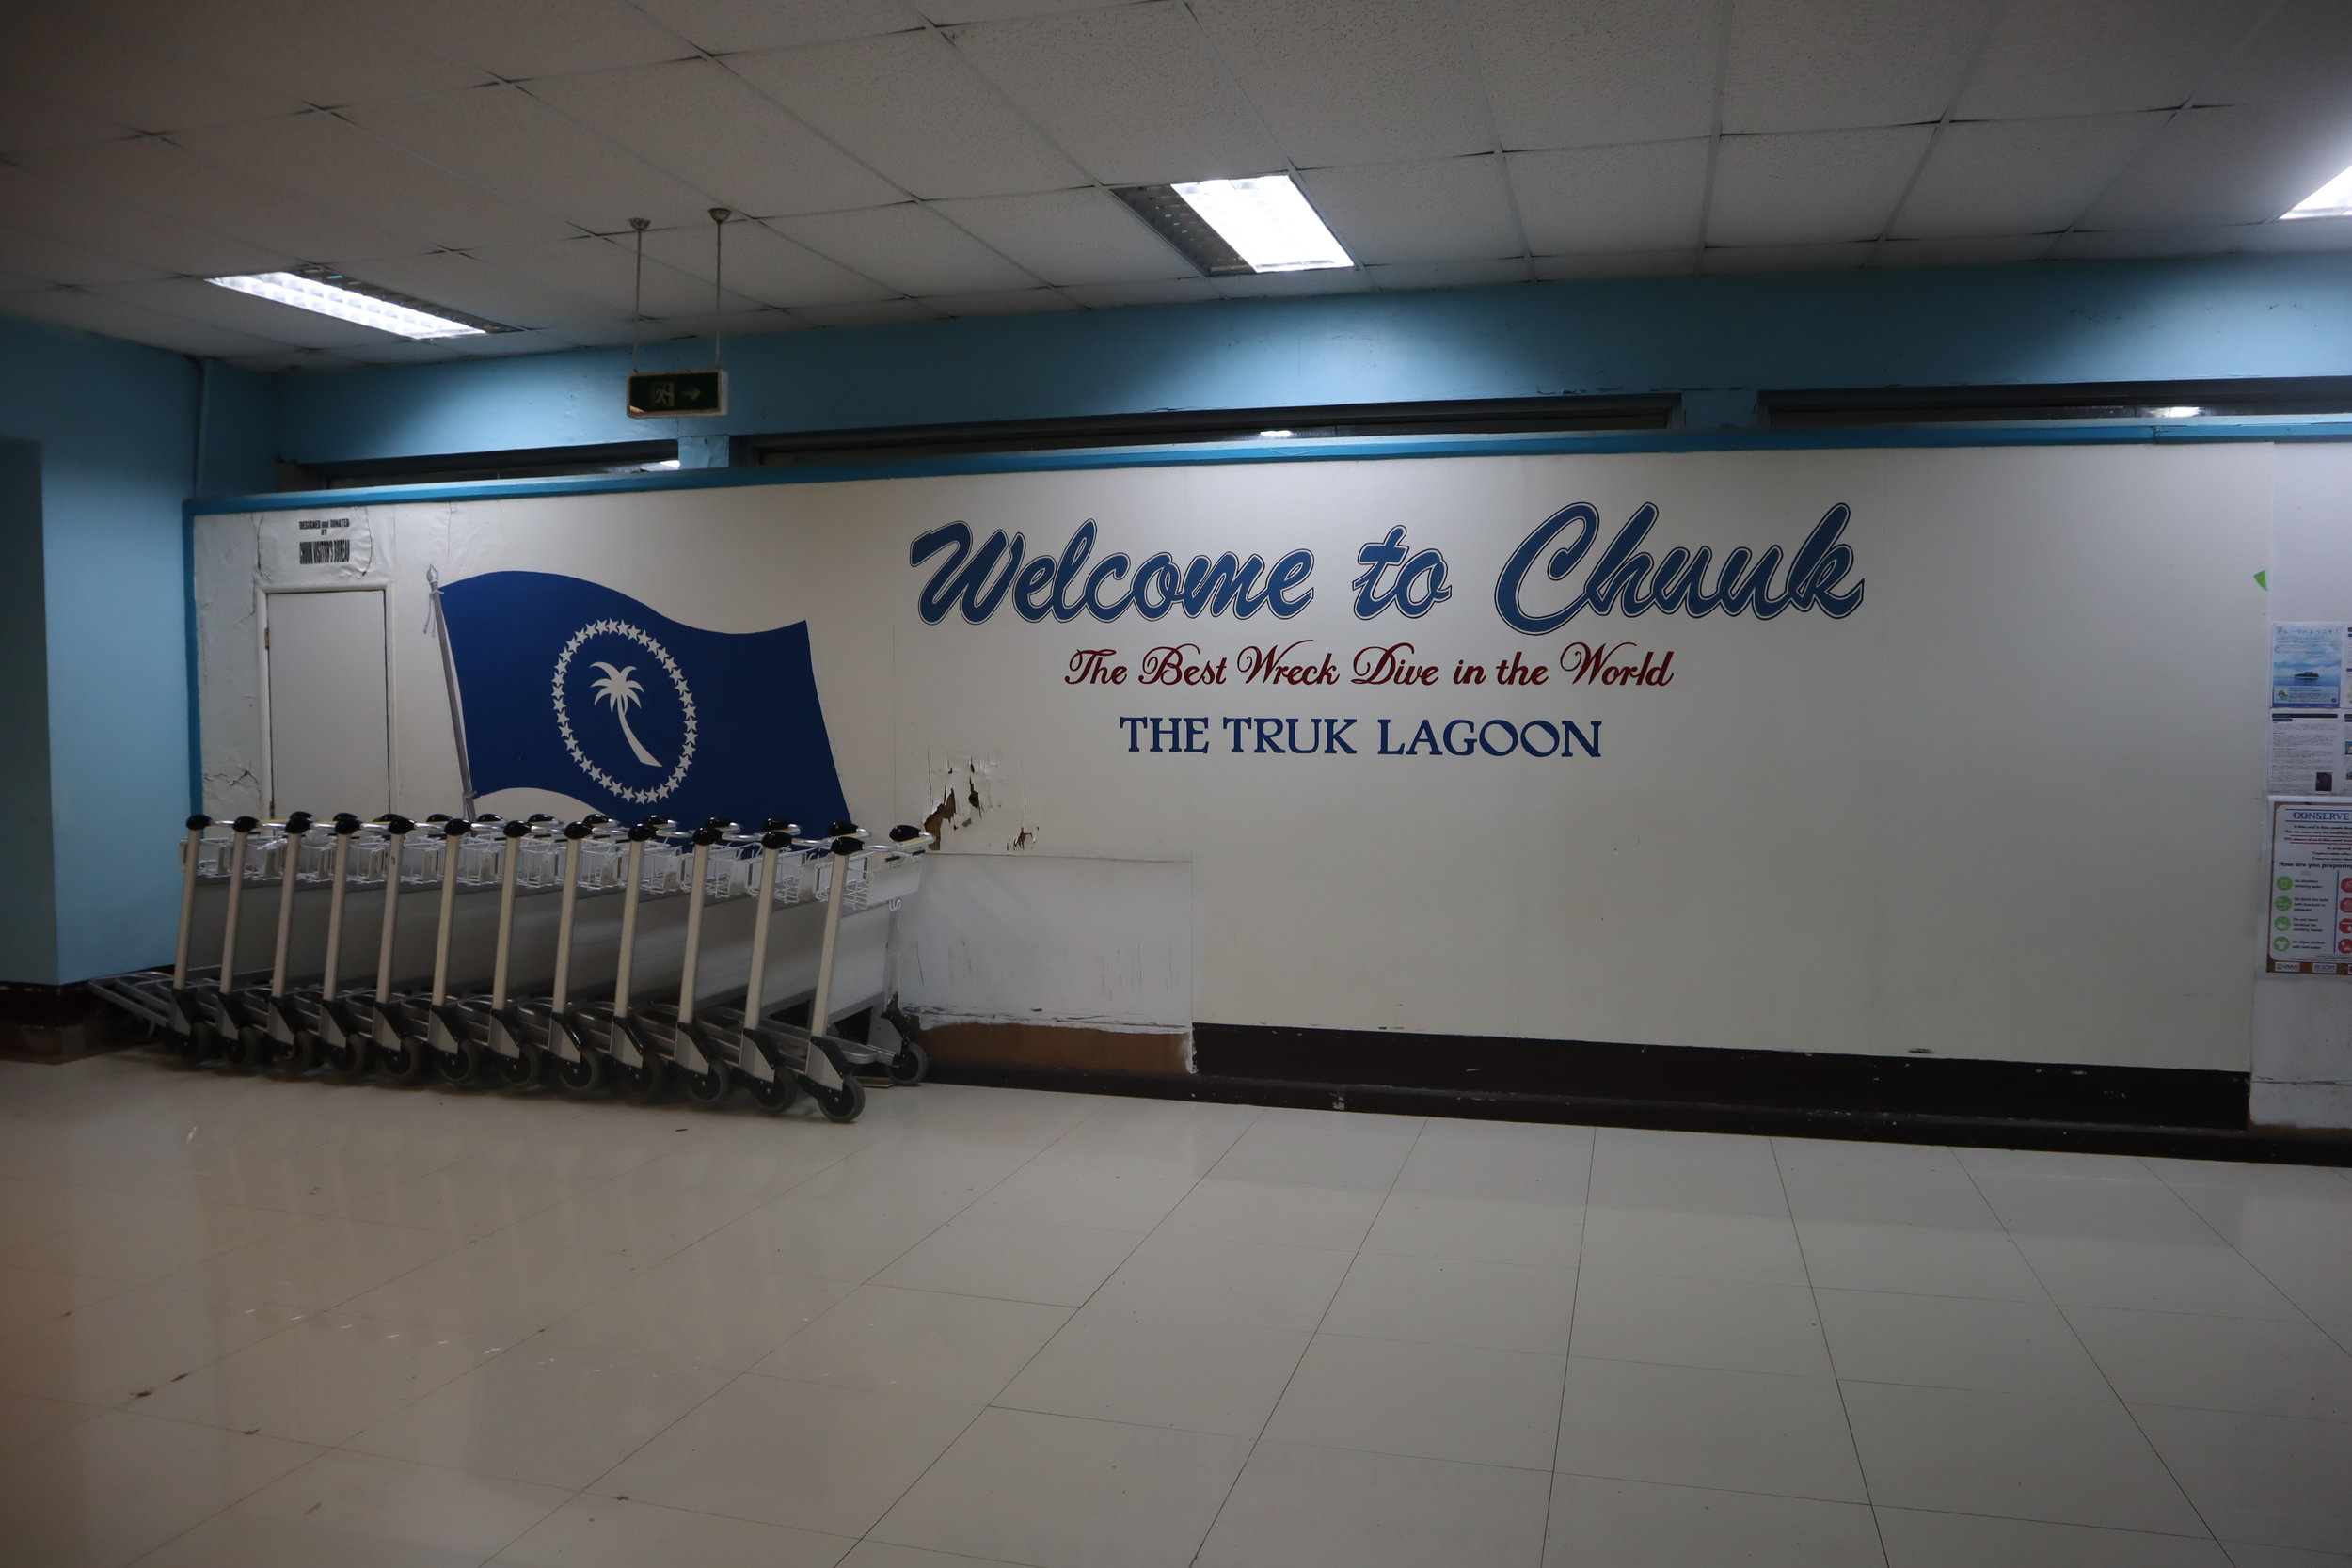 Welcome to Chuuk sign